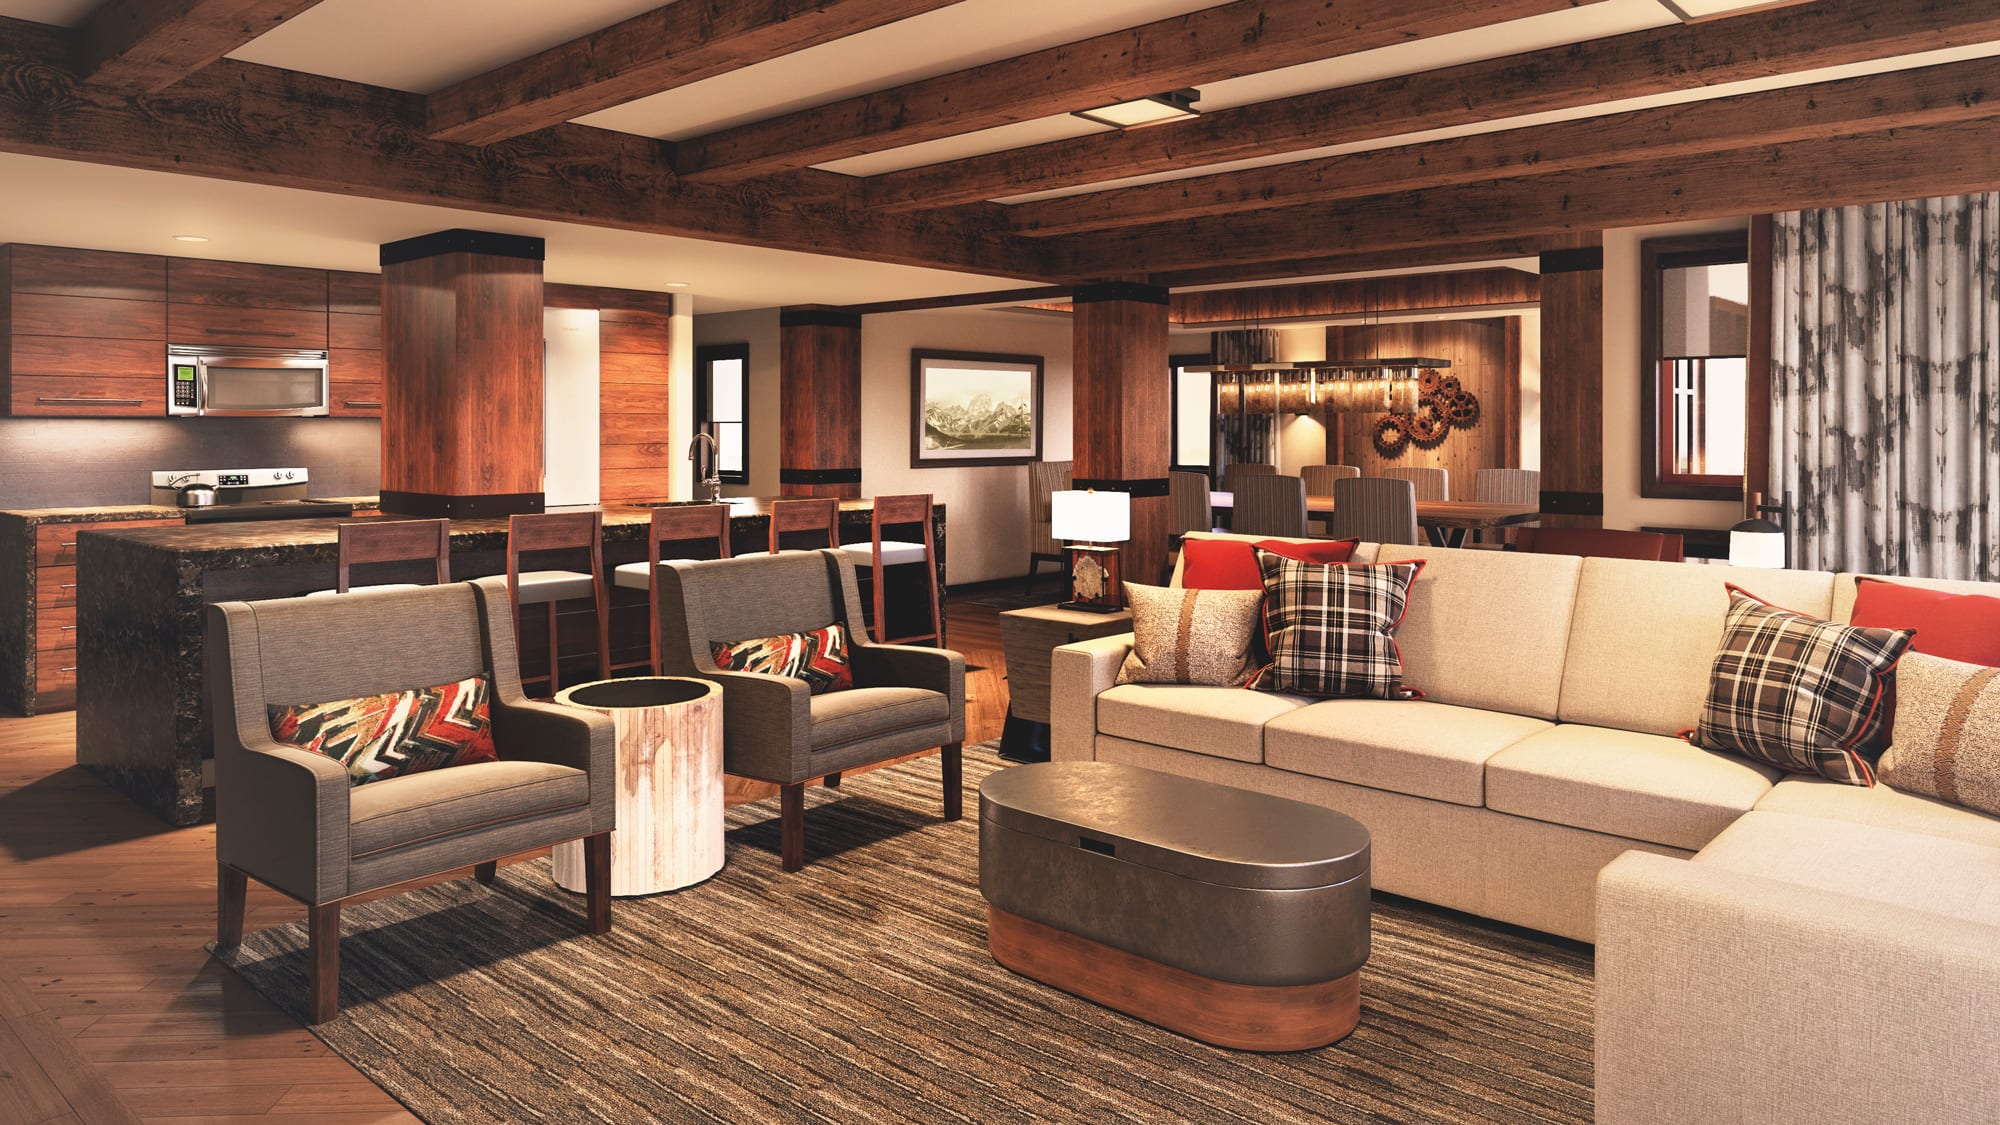 The living area, dining area and kitchen of a Disney Vacation Club Resort villa